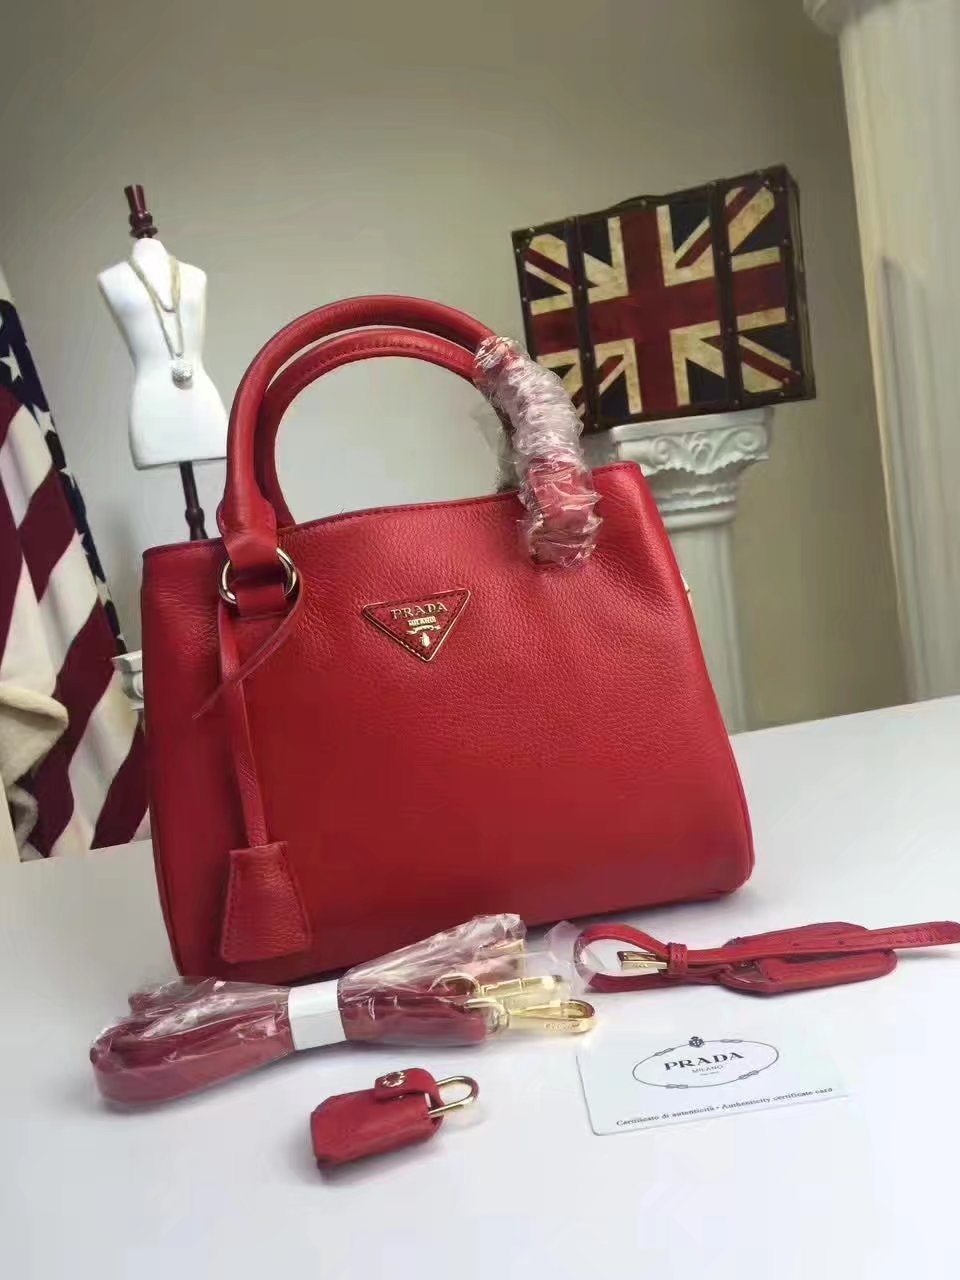 Prada Calf Leather Tote Double Leather Top Handle Bag Red